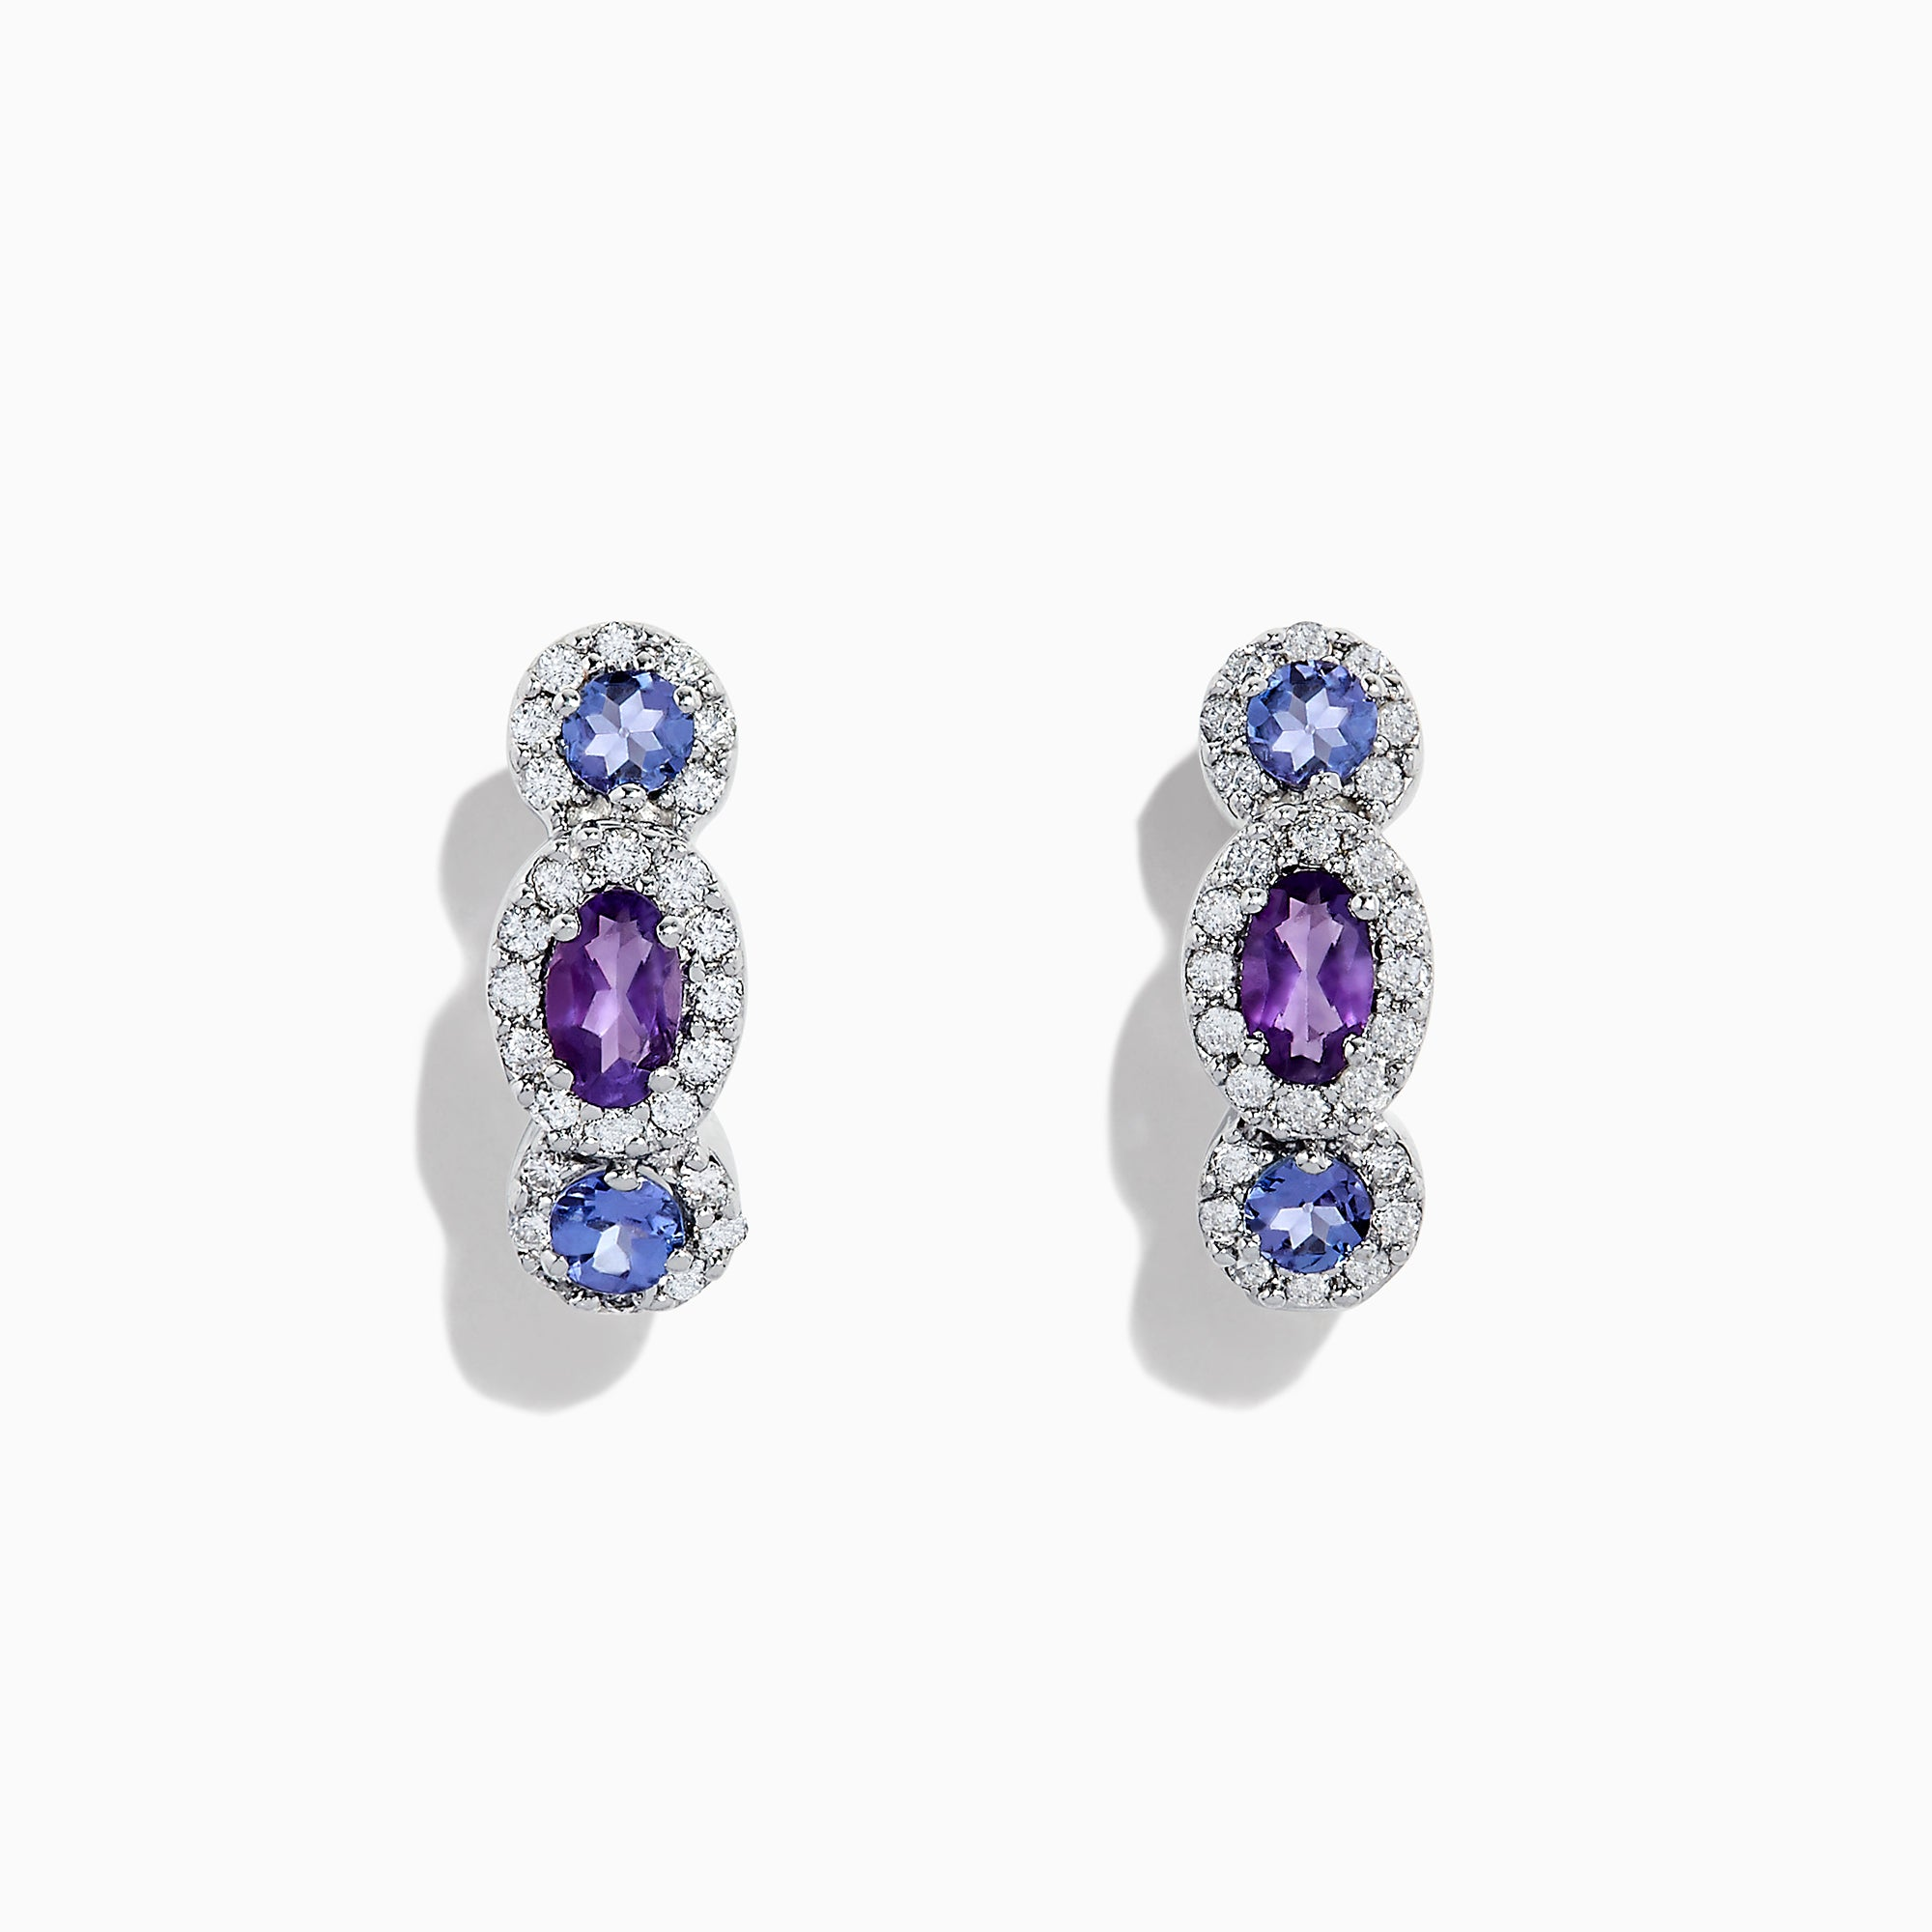 Effy 14K White Gold Tanzanite, Amethyst and Diamond Earrings, 1.64 TCW